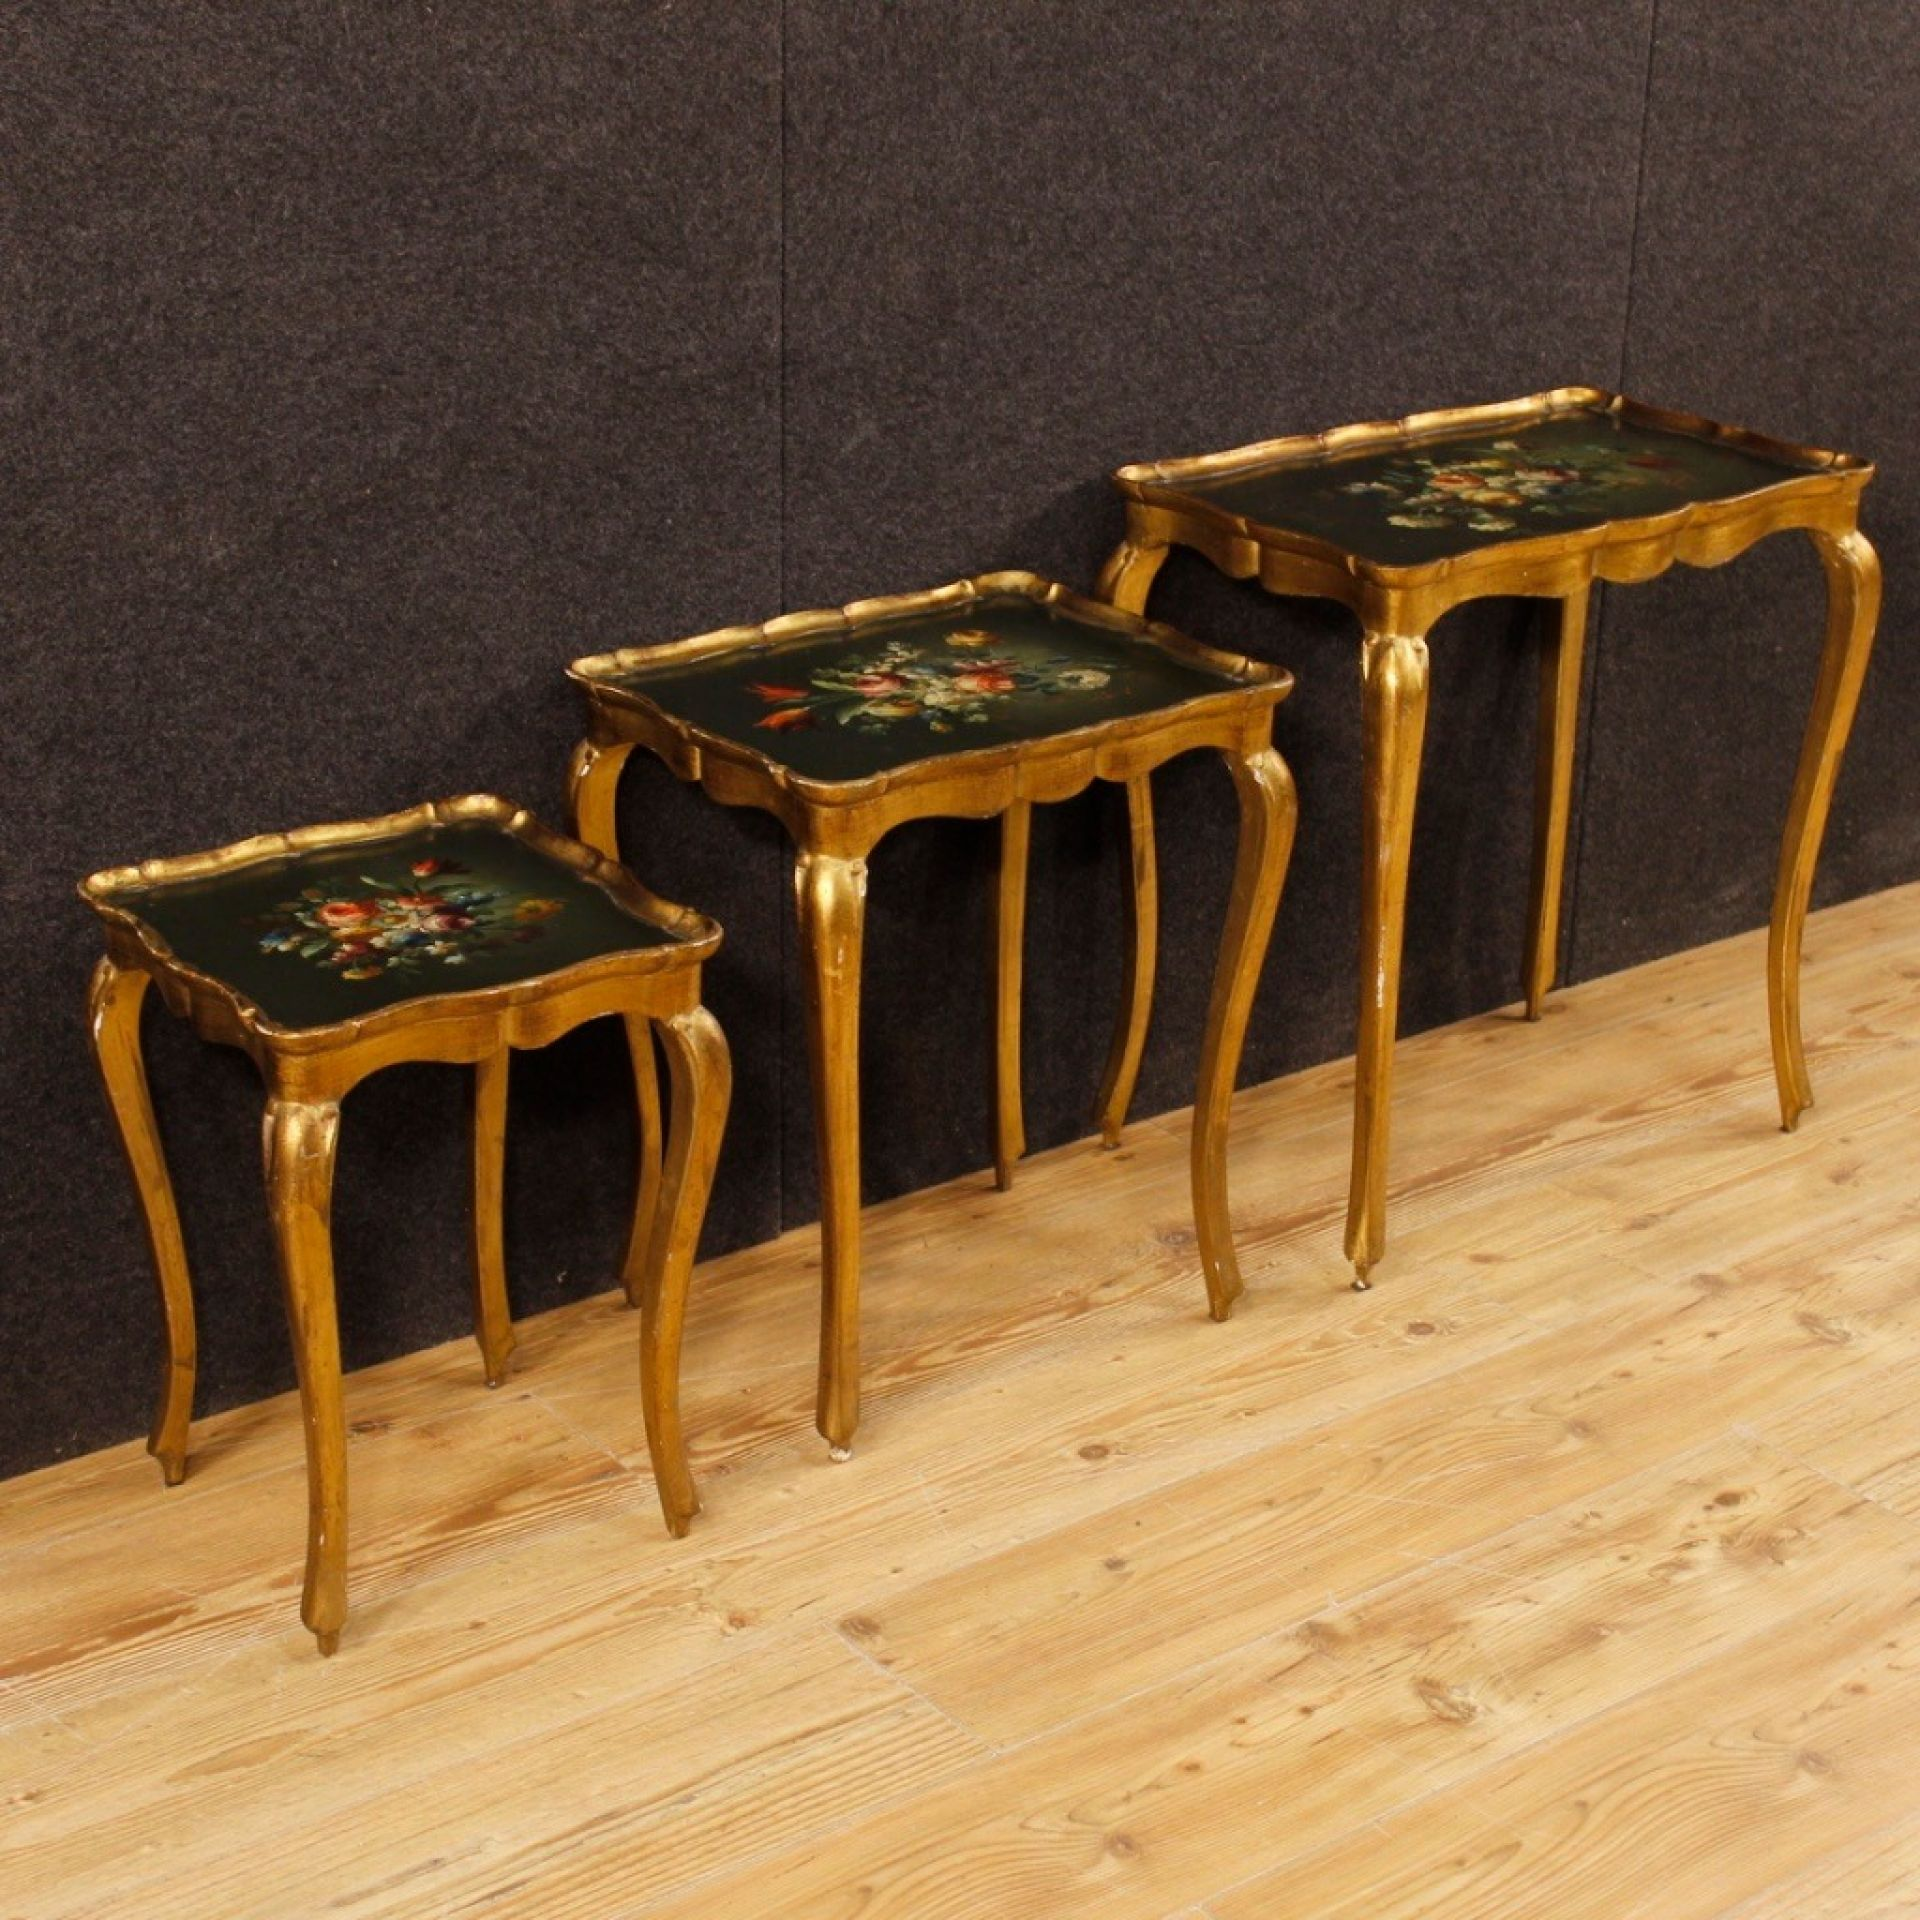 20th Century Italian Painted And Gilded Wood Set Of 3 Coffee Tables, 1970